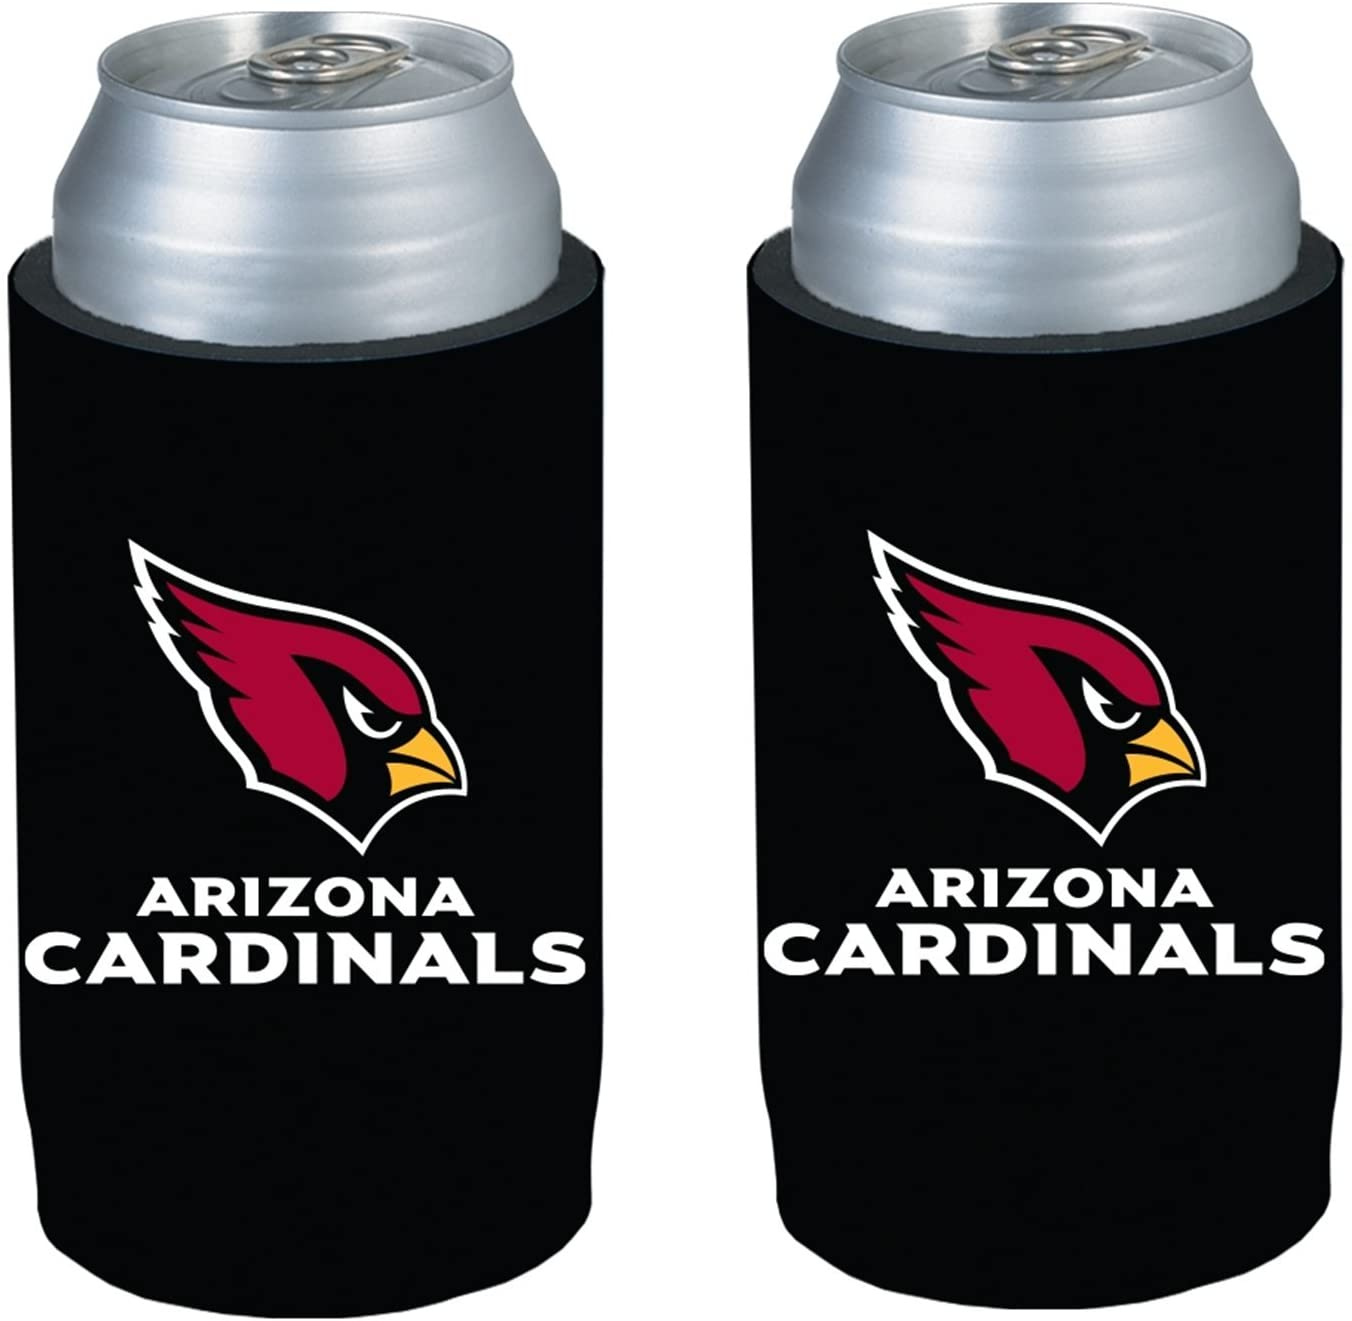 NFL Football Team Logo Ultra Slim Beer 12oz Can Holder Coolers - 2-Pack